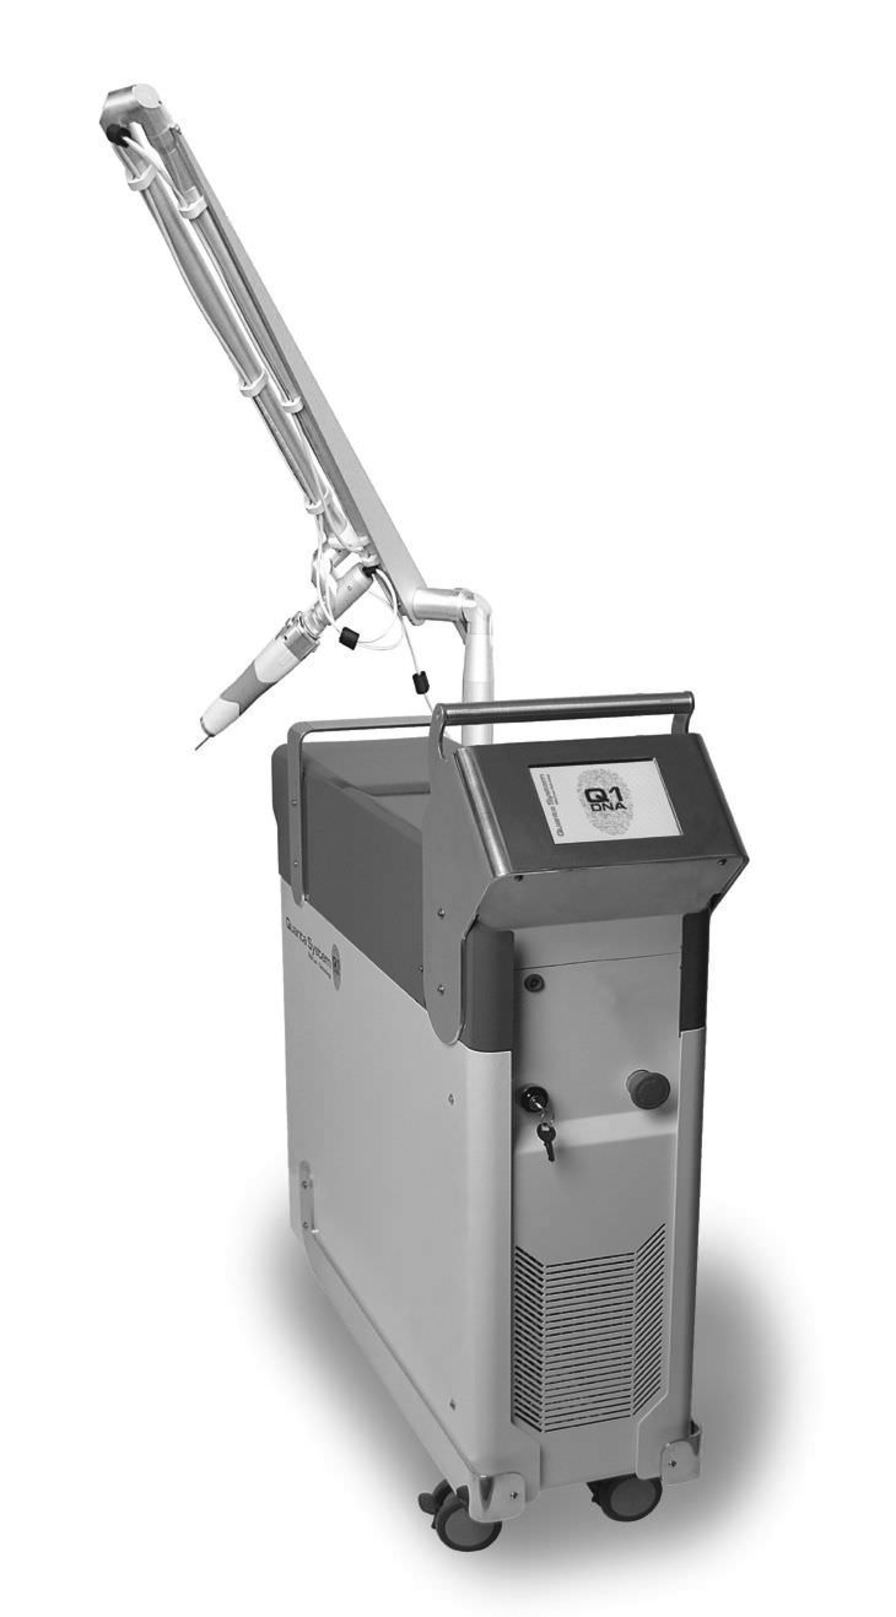 Dermatological laser / Nd:YAG / on trolley 1064/532 nm | ASSET Quanta System S.p.A.